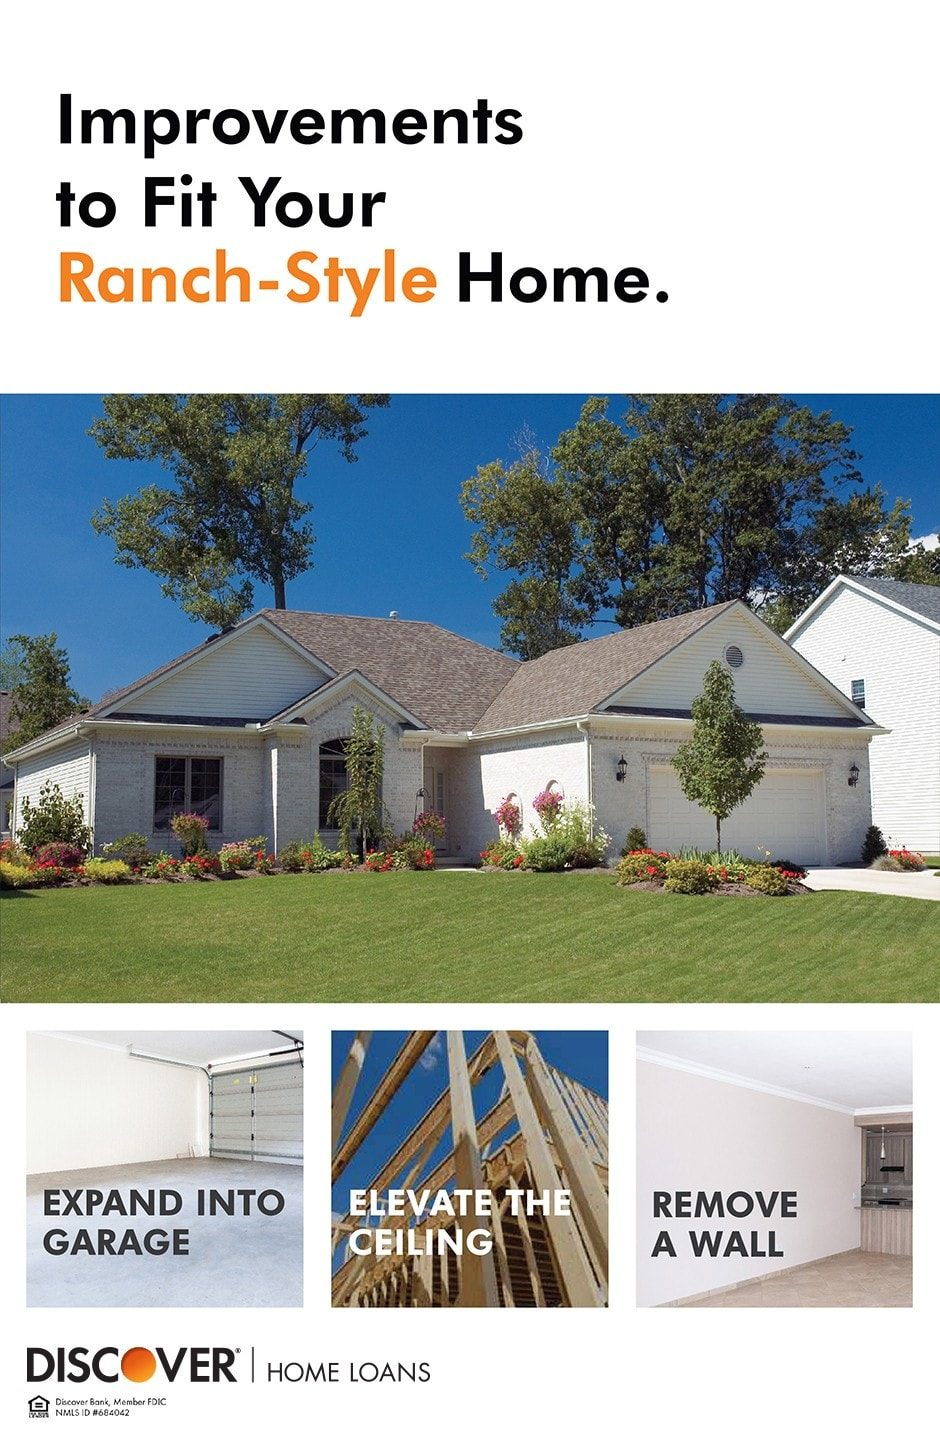 examples of improvements that fit a ranch style home